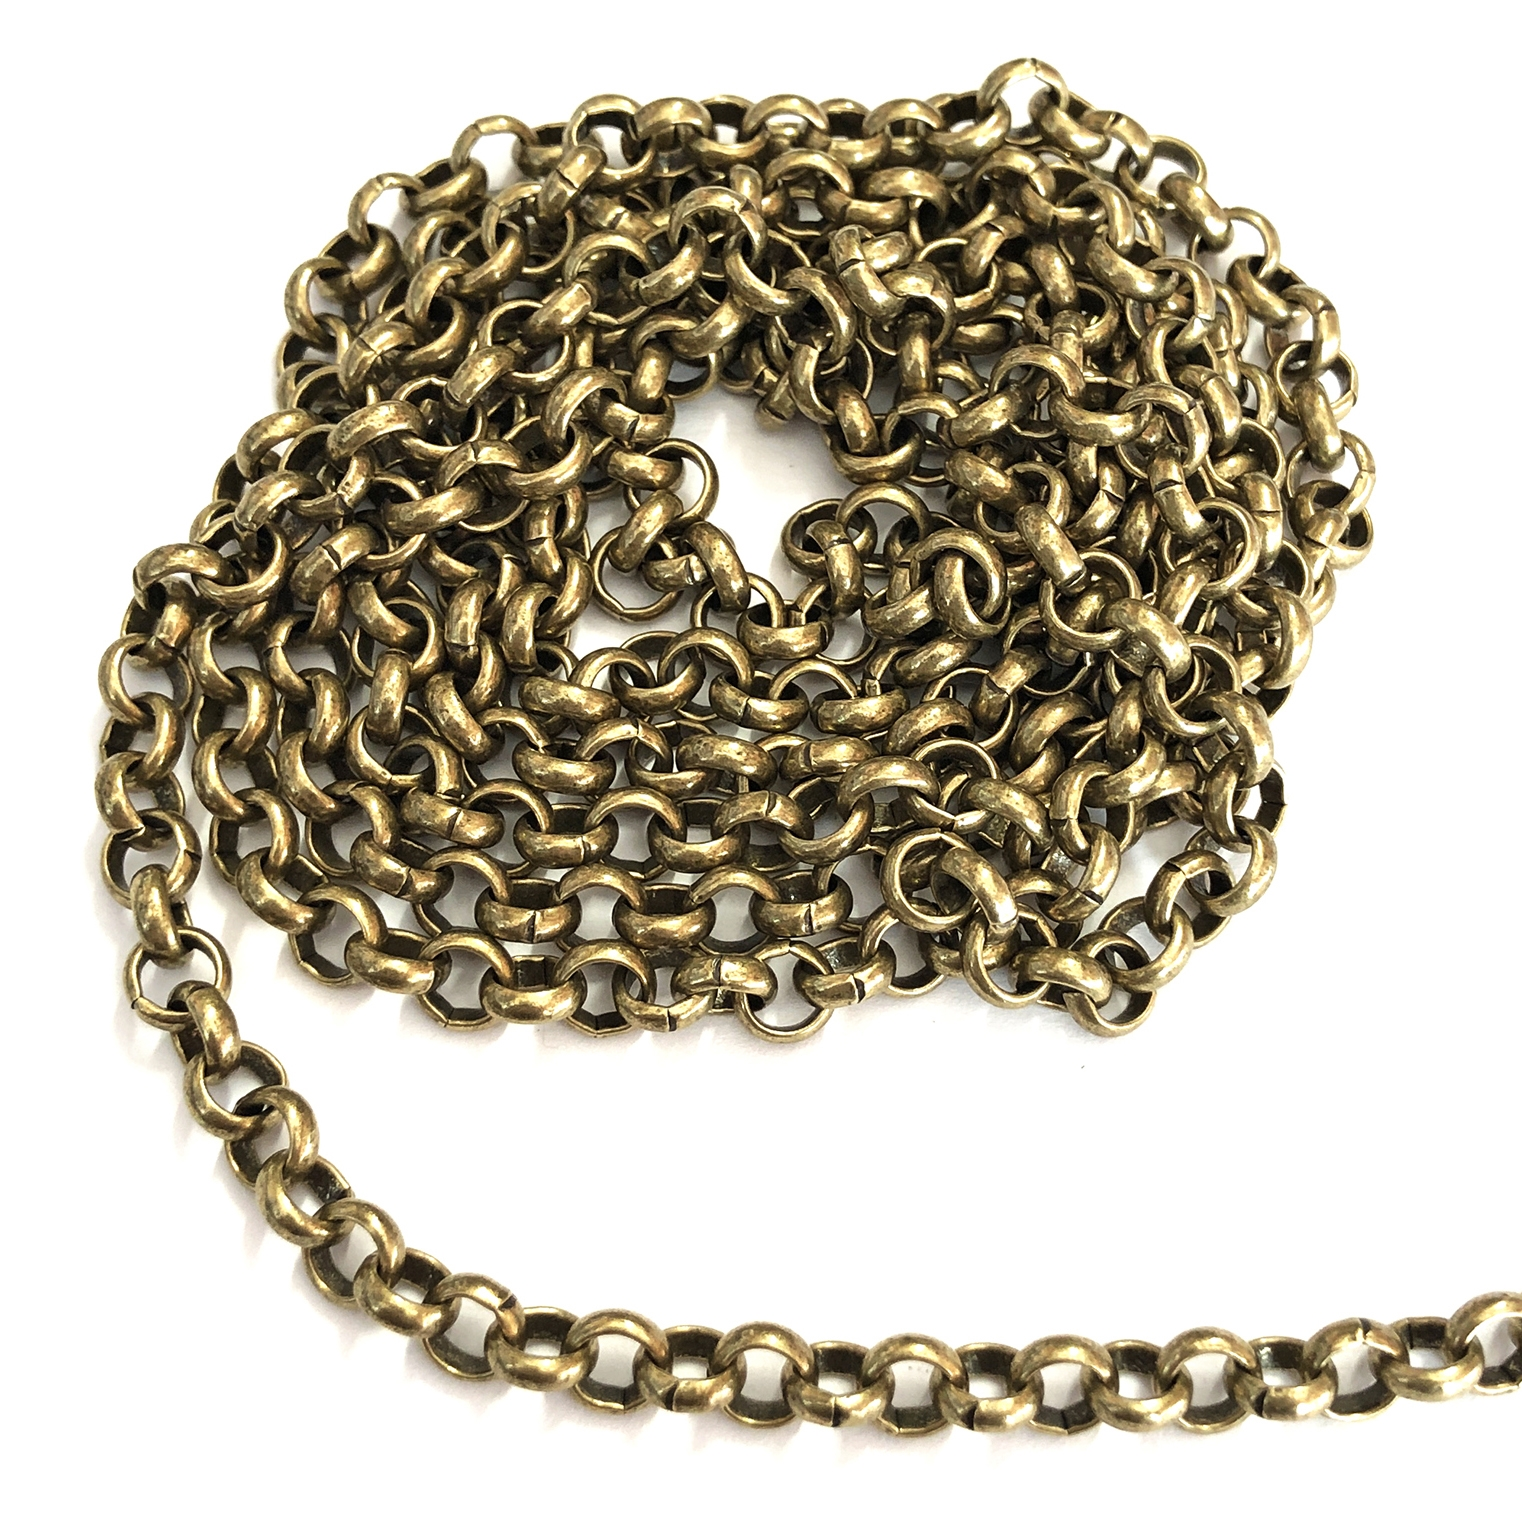 brass jewelry chain, rolo chain, antique brass, B'sue Boutiques, nickel free, US made, brass jewelry supplies, vintage supplies, chain supplies, charm bracelets, bracelets chain, necklace chain, antique brass rolo chain, 6mm links, 0733